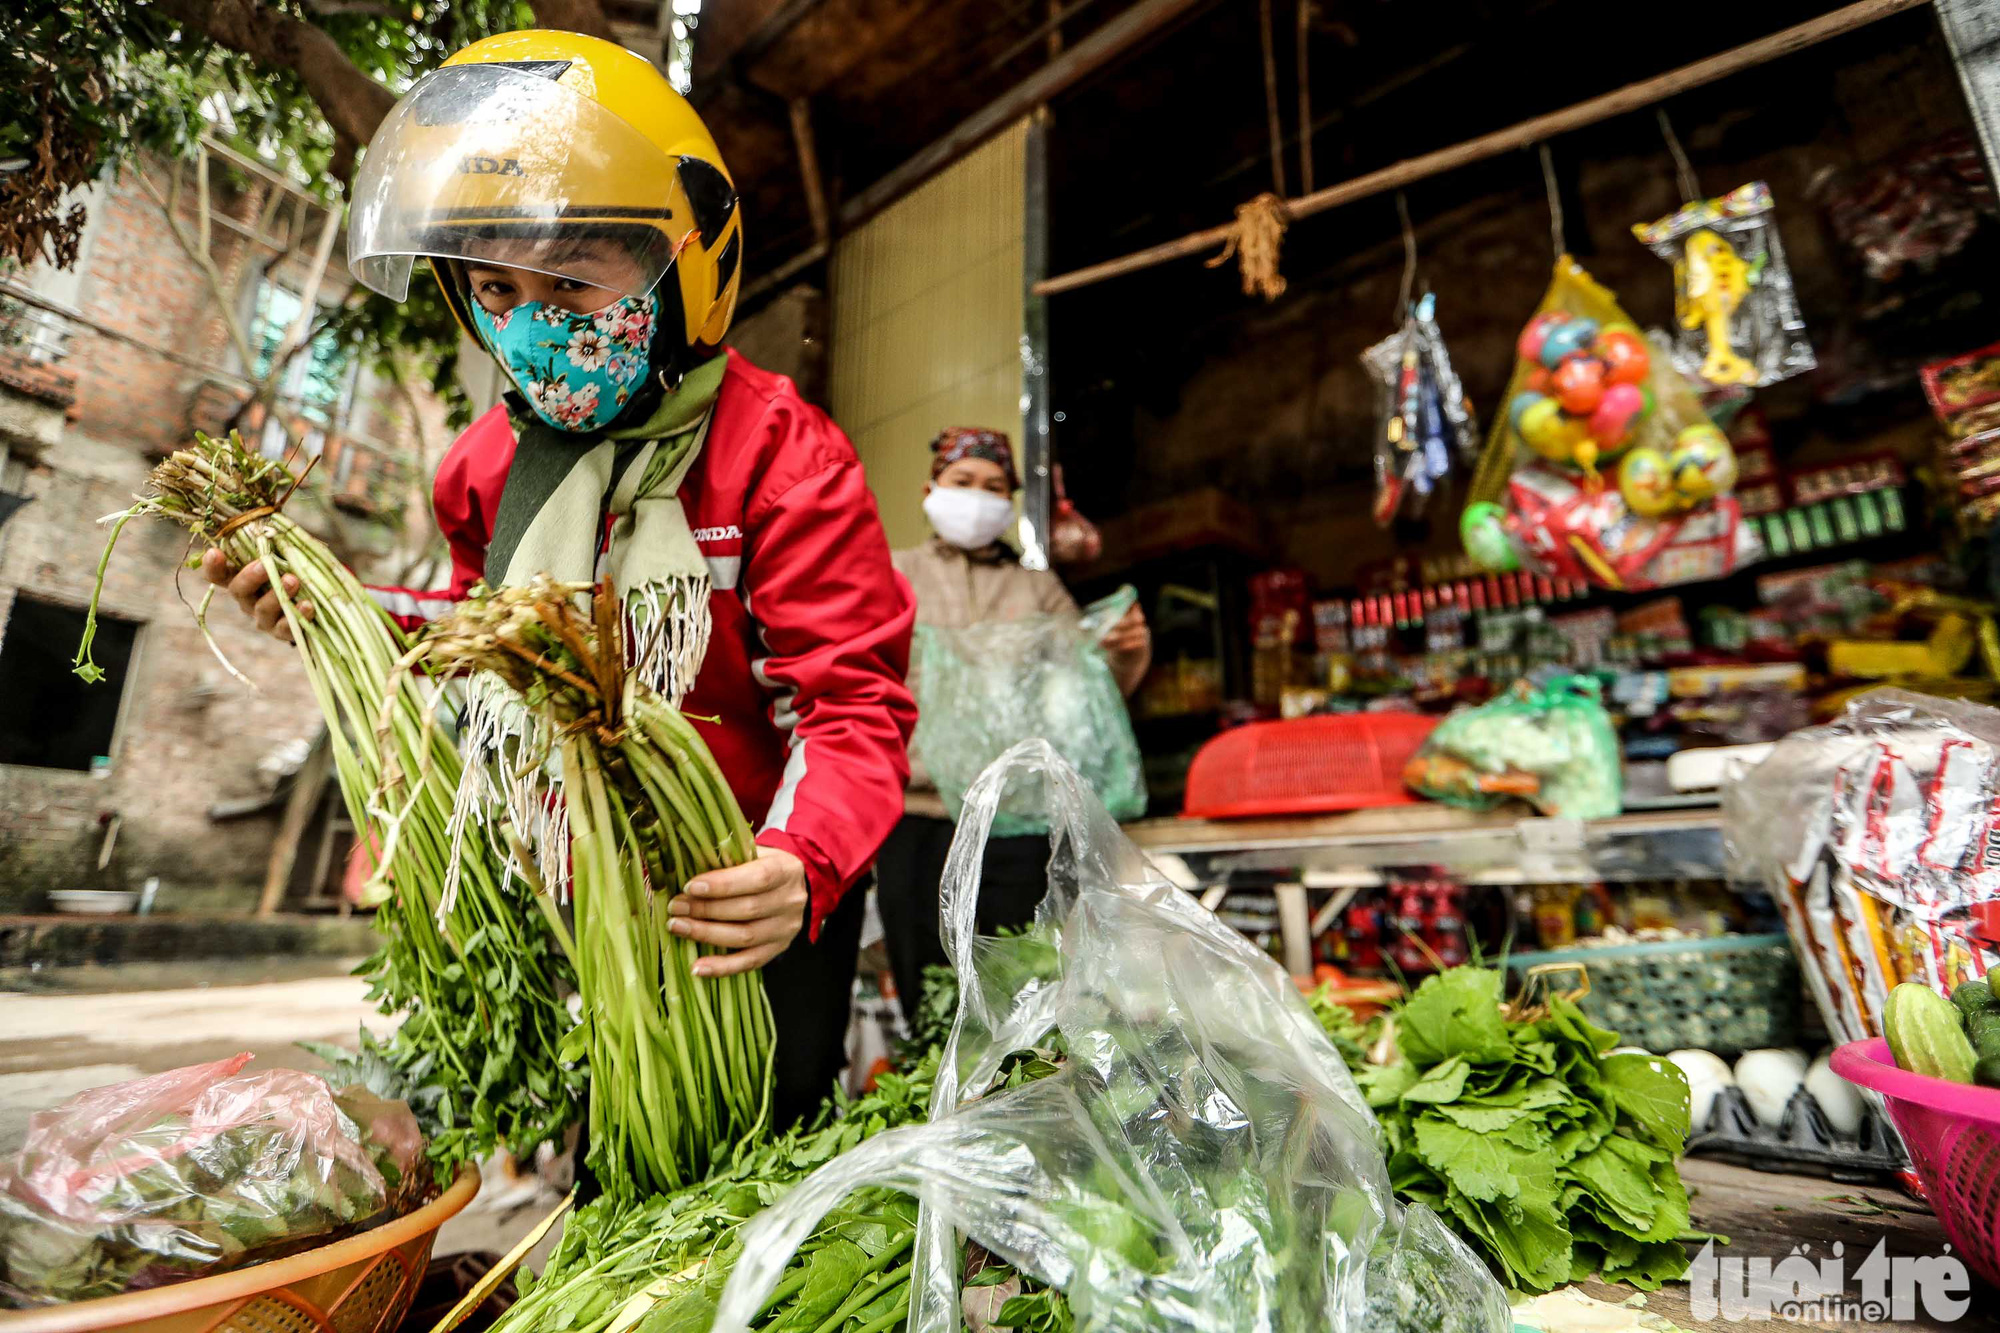 A resident buys groceries at a vegetable stand owned by Nguyen Thi Thang in Ai Van Village in Son Loi Commune, Binh Xuyen District, Vinh Phuc Province, Vietnam. Photo: Nguyen Khanh / Tuoi Tre